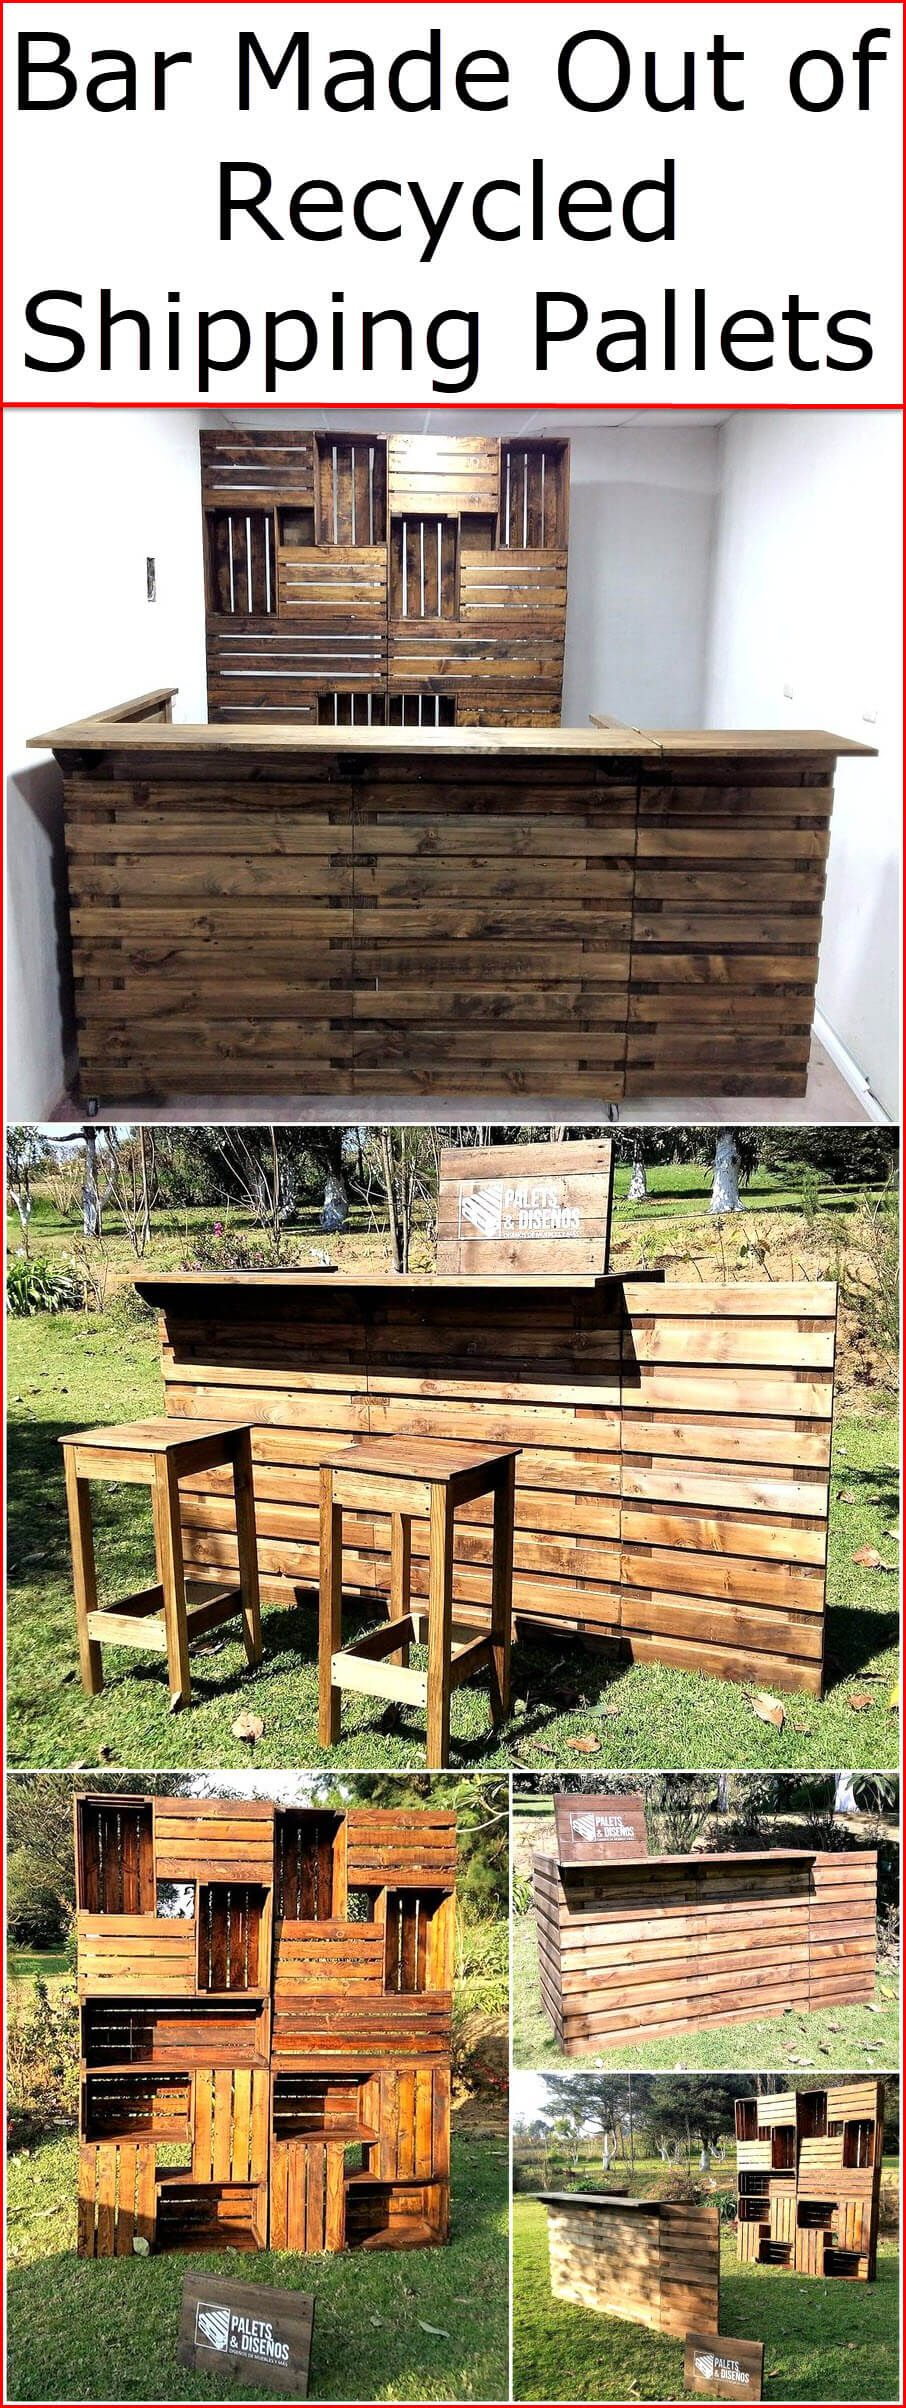 Bar Made Out of Recycled Shipping Pallets #oldpalletsforcrafting